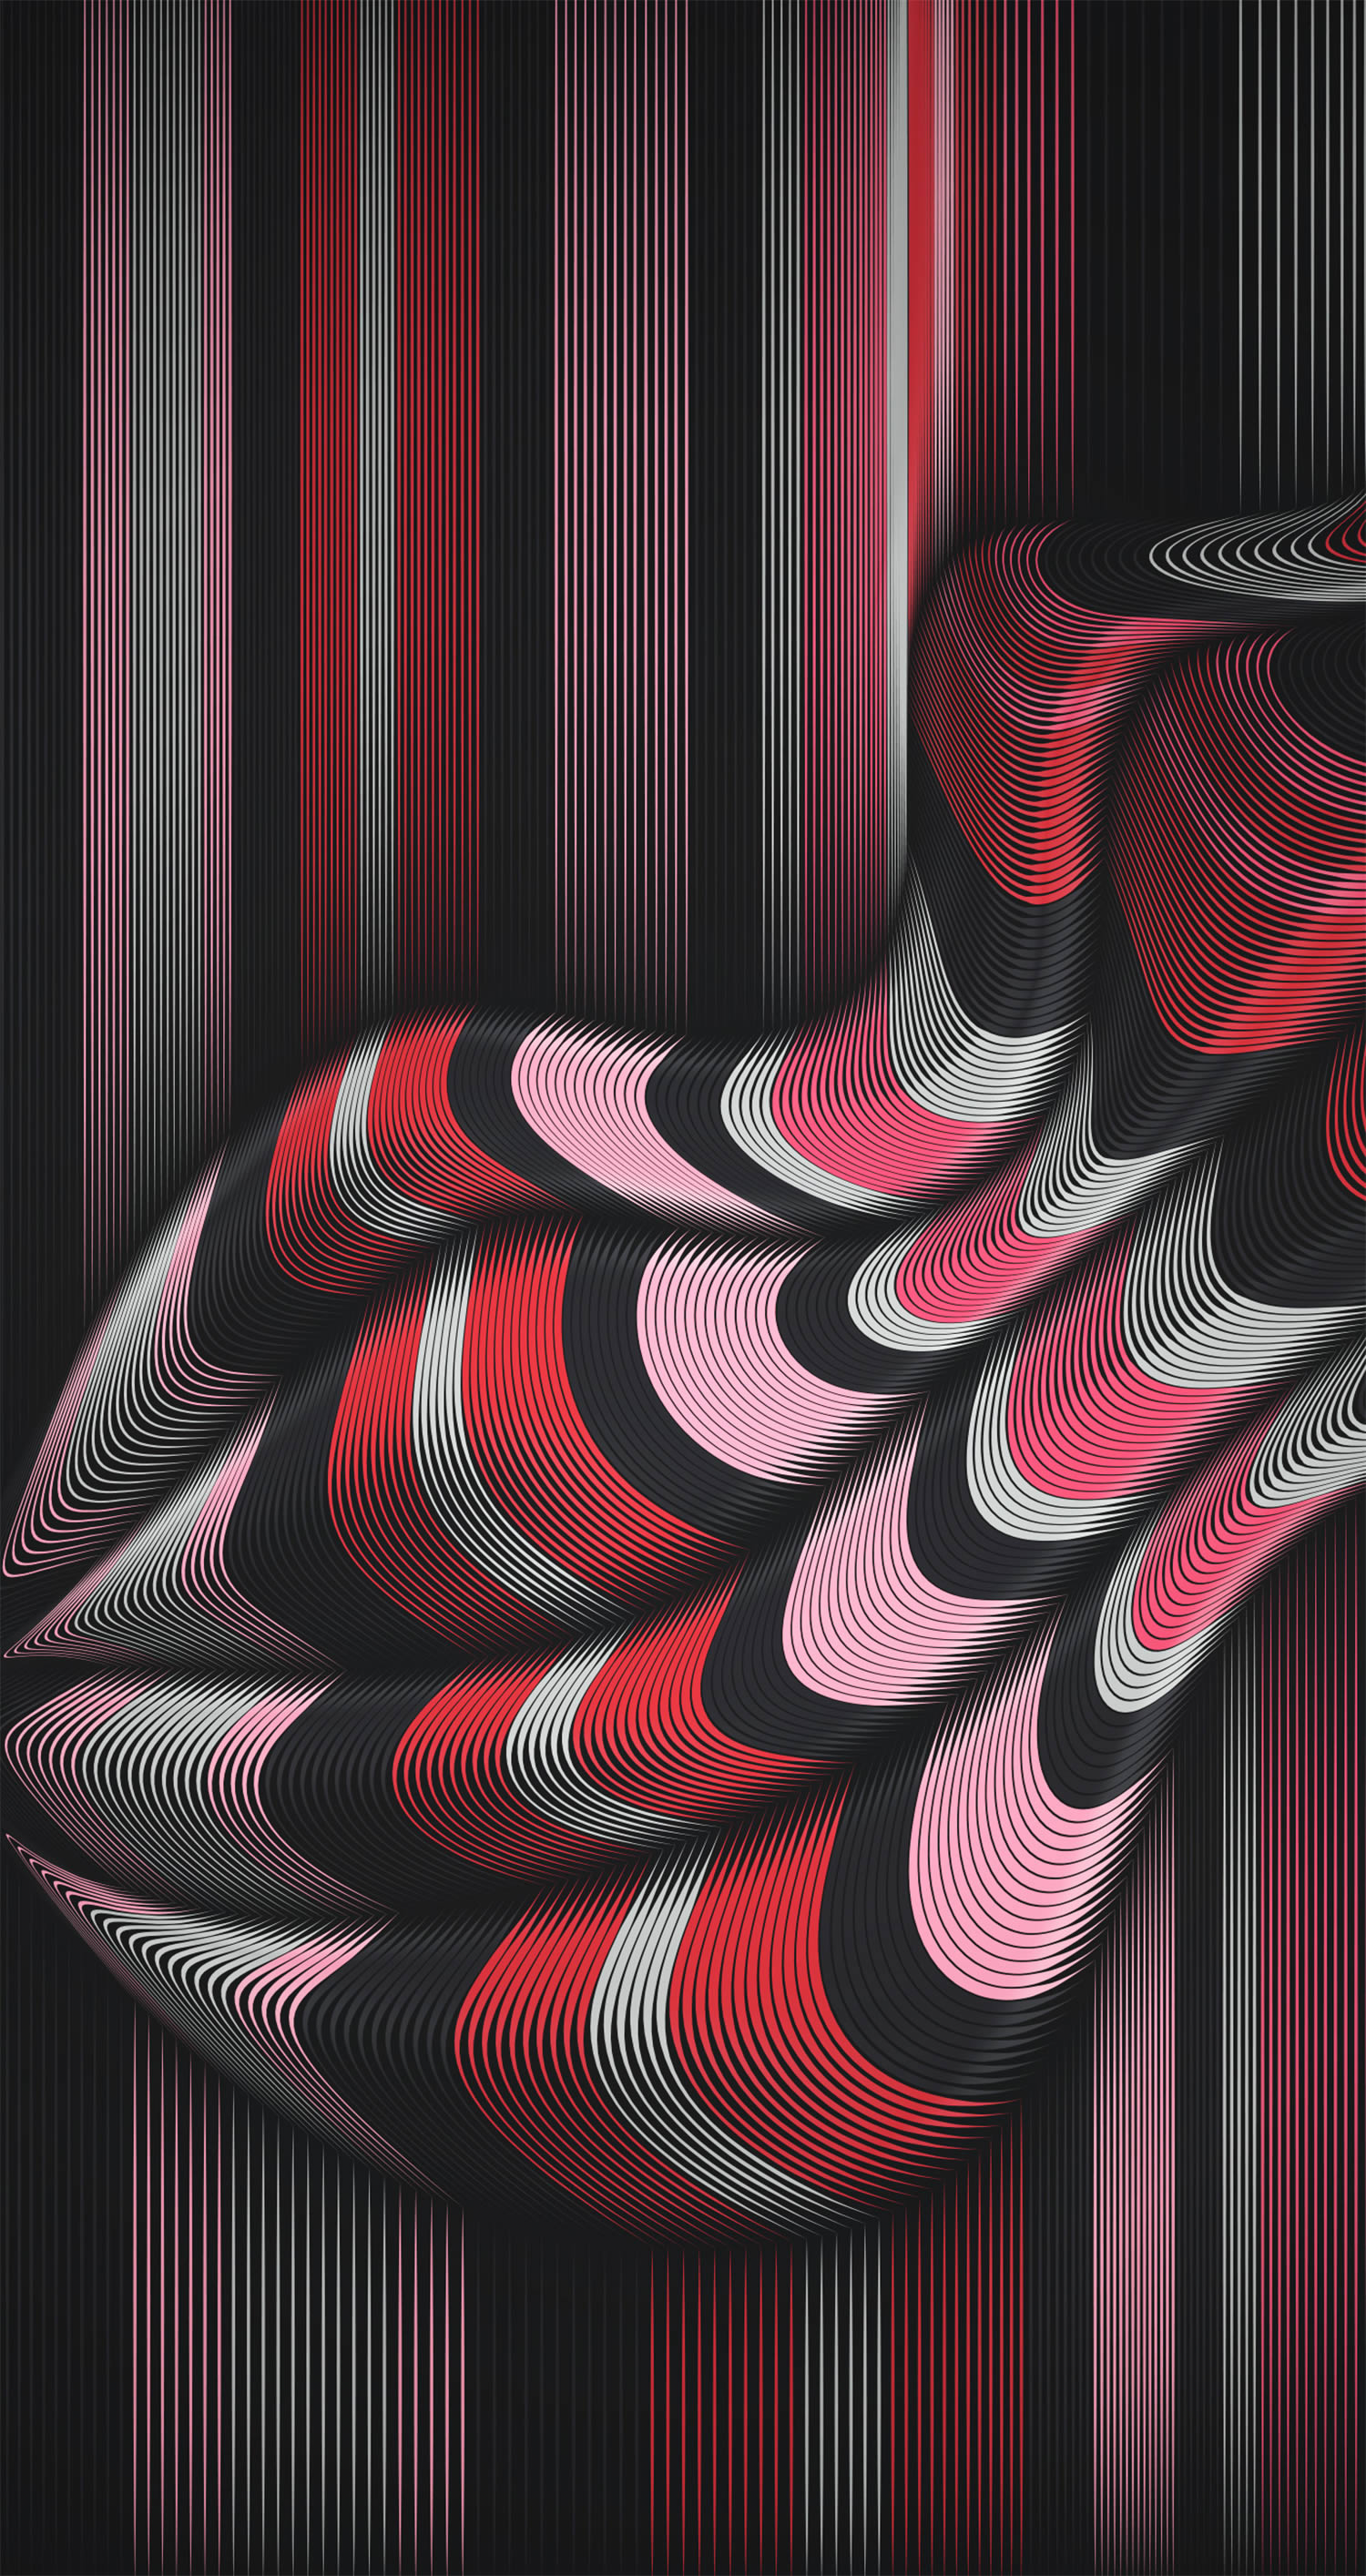 red and pink waves, line art